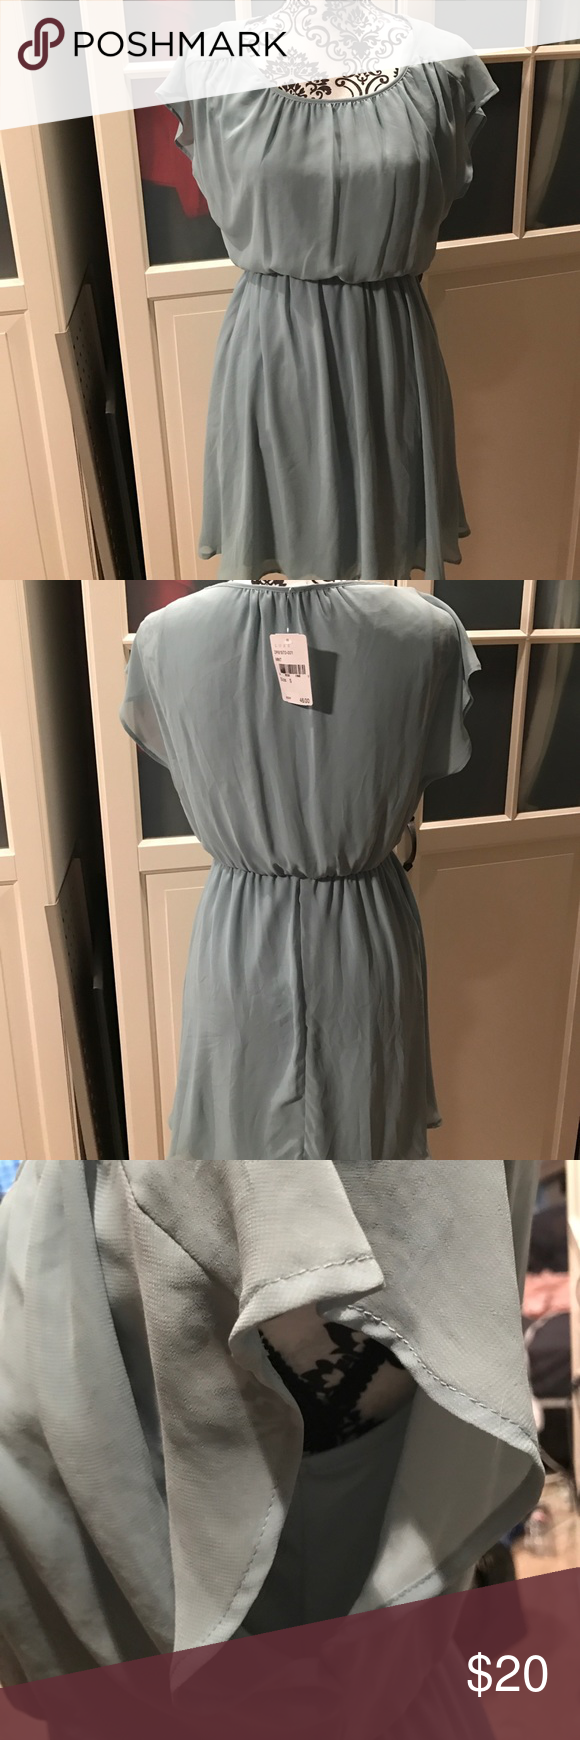 Mint green dress Mint green dress NWT. Size small but has some stretch to it. I wear a medium and it fit great. Lined with matching mint green. Great for spring and summer lush Dresses Mini